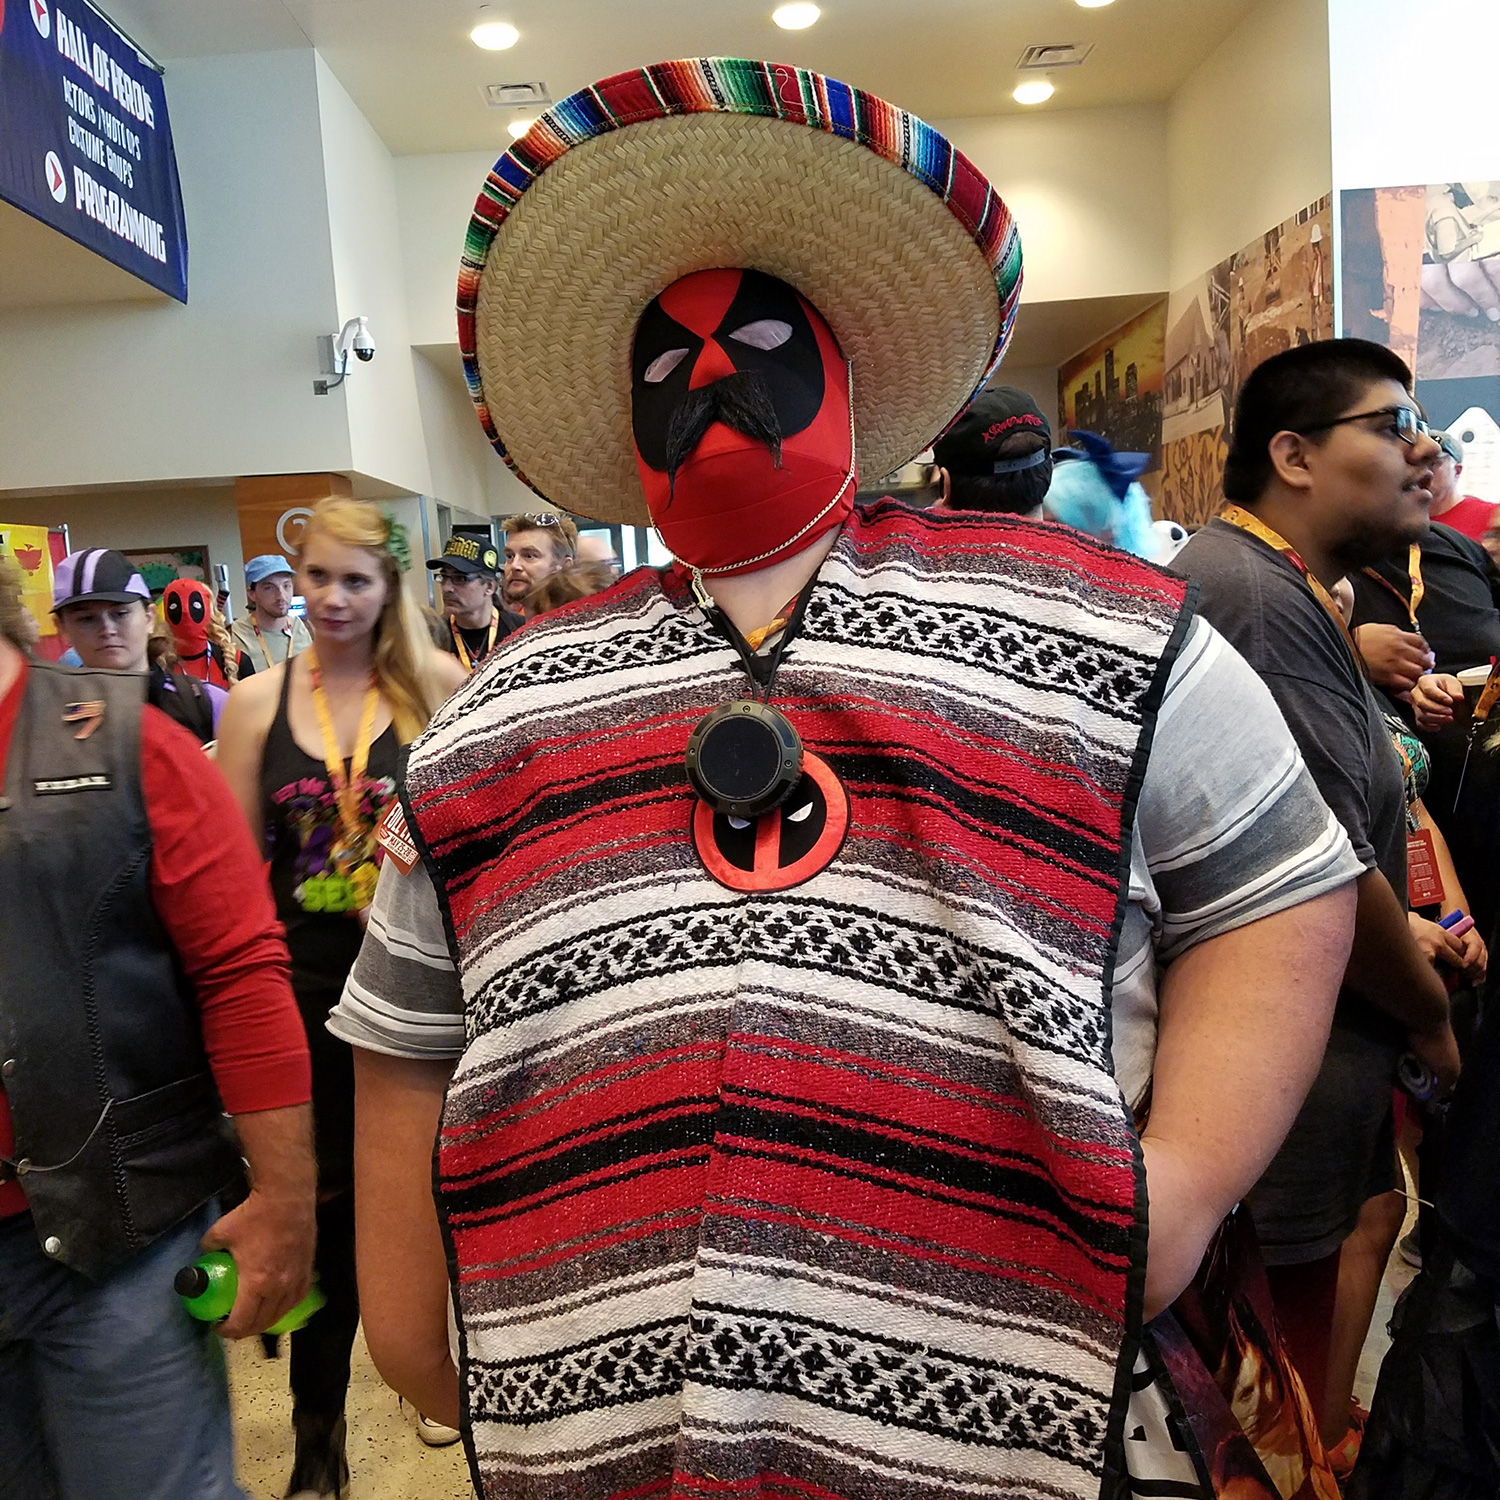 Phoenix Comicon 2017 – photo by Bob Leeper